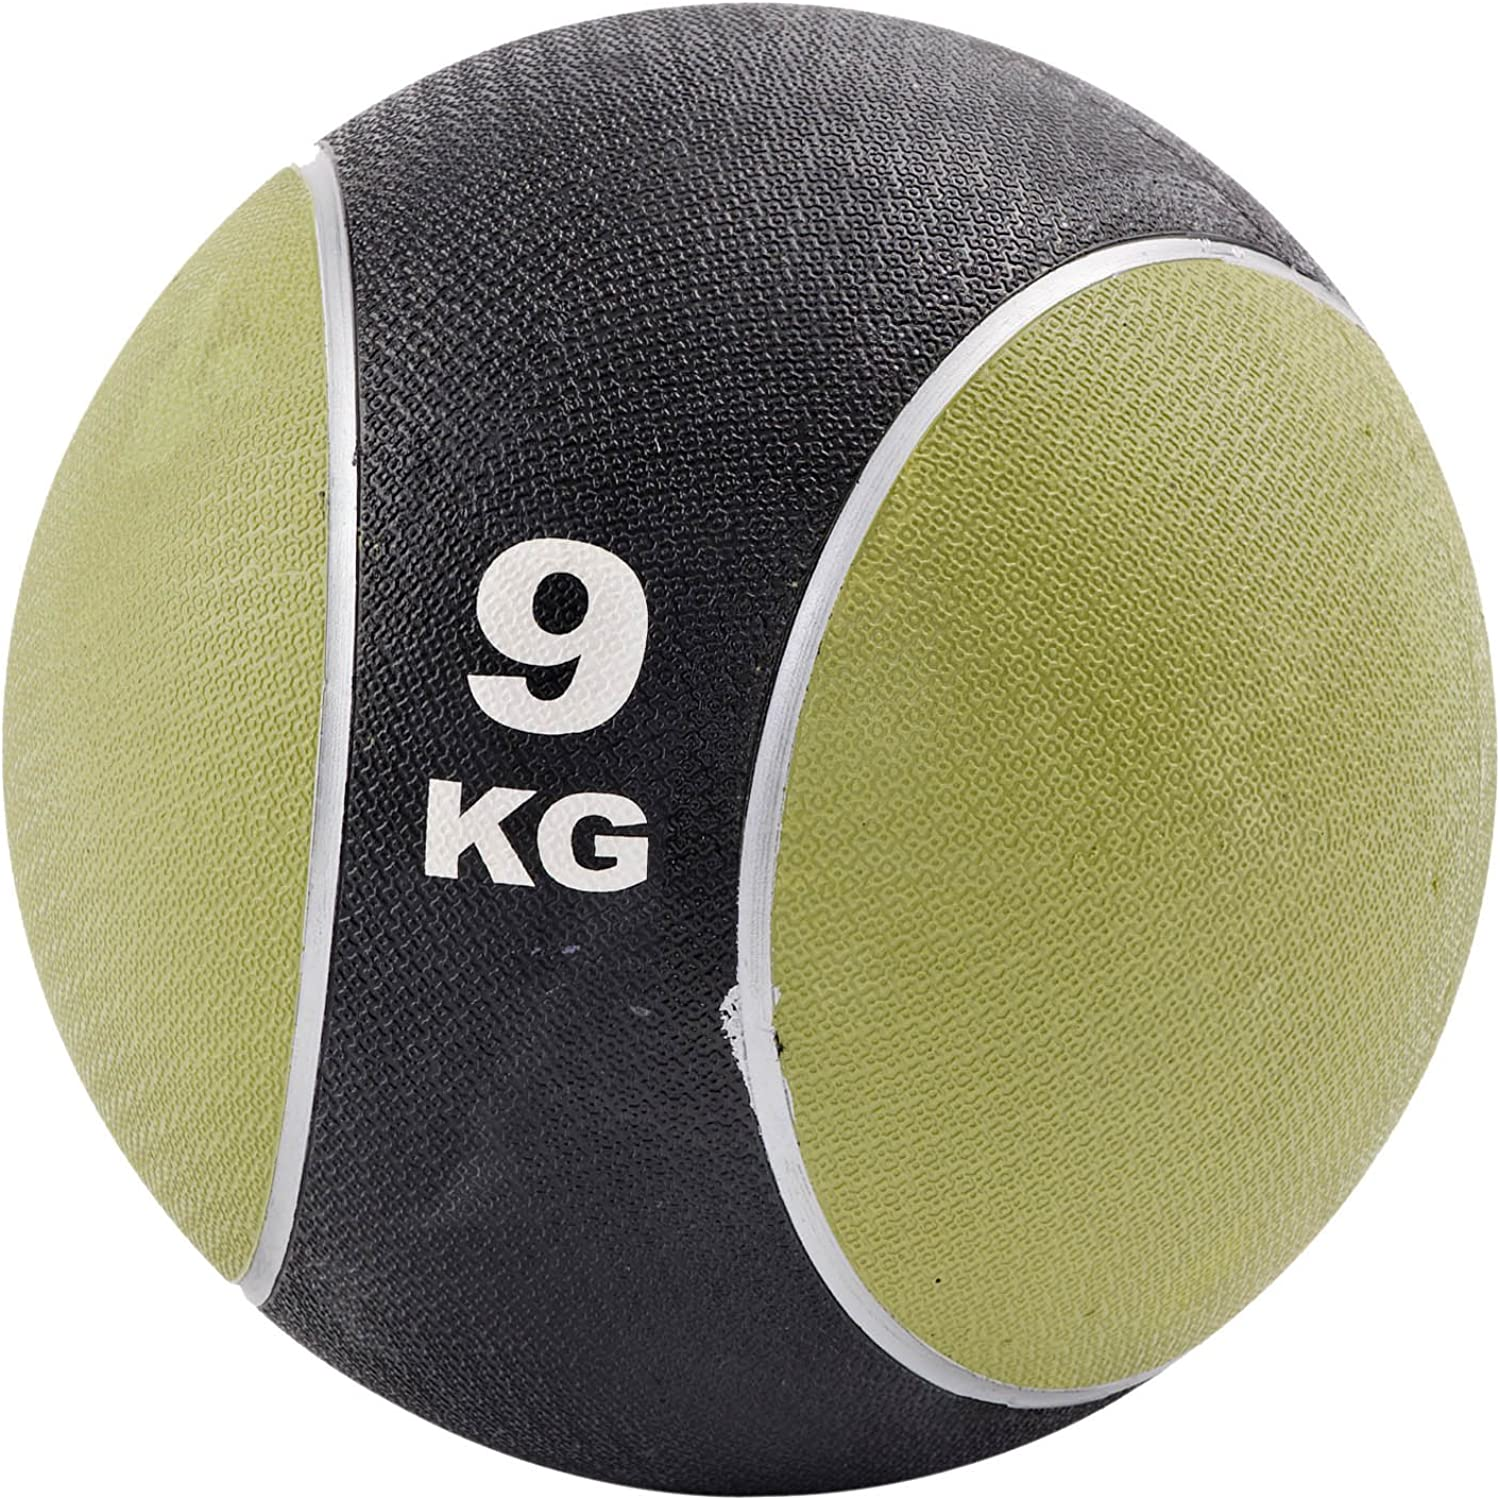 York Fitness York 9kg Medicine Ball